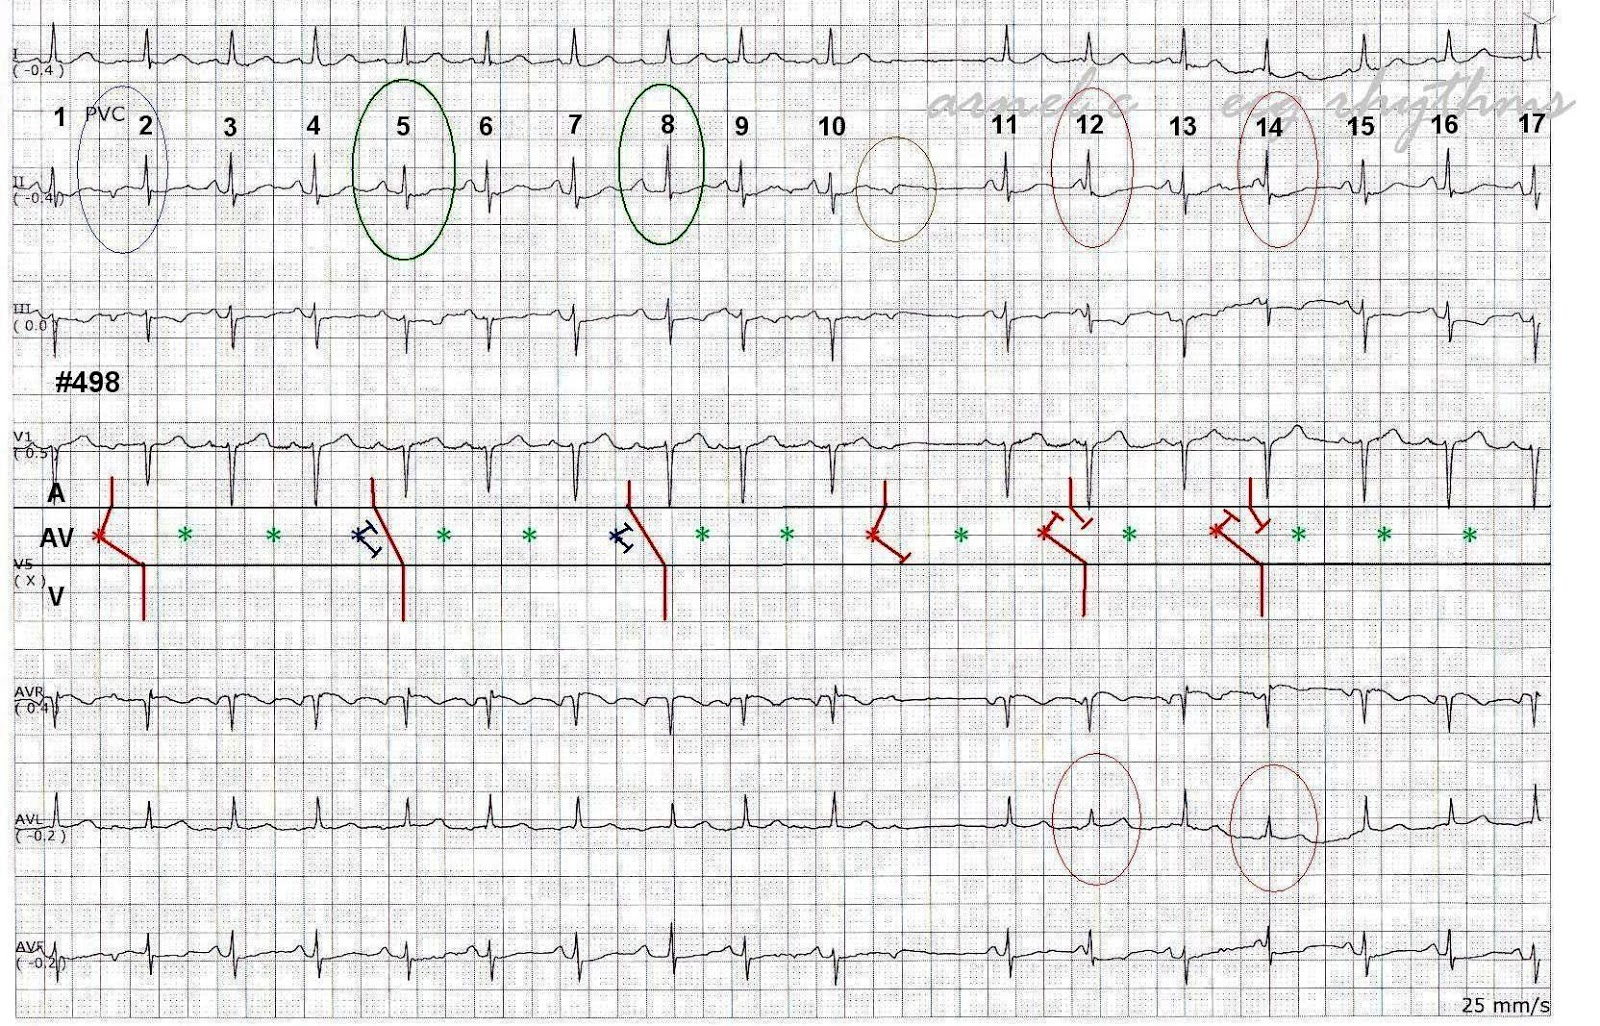 Ecg Rhythms Several Tricks Of A Pjc In One Strip